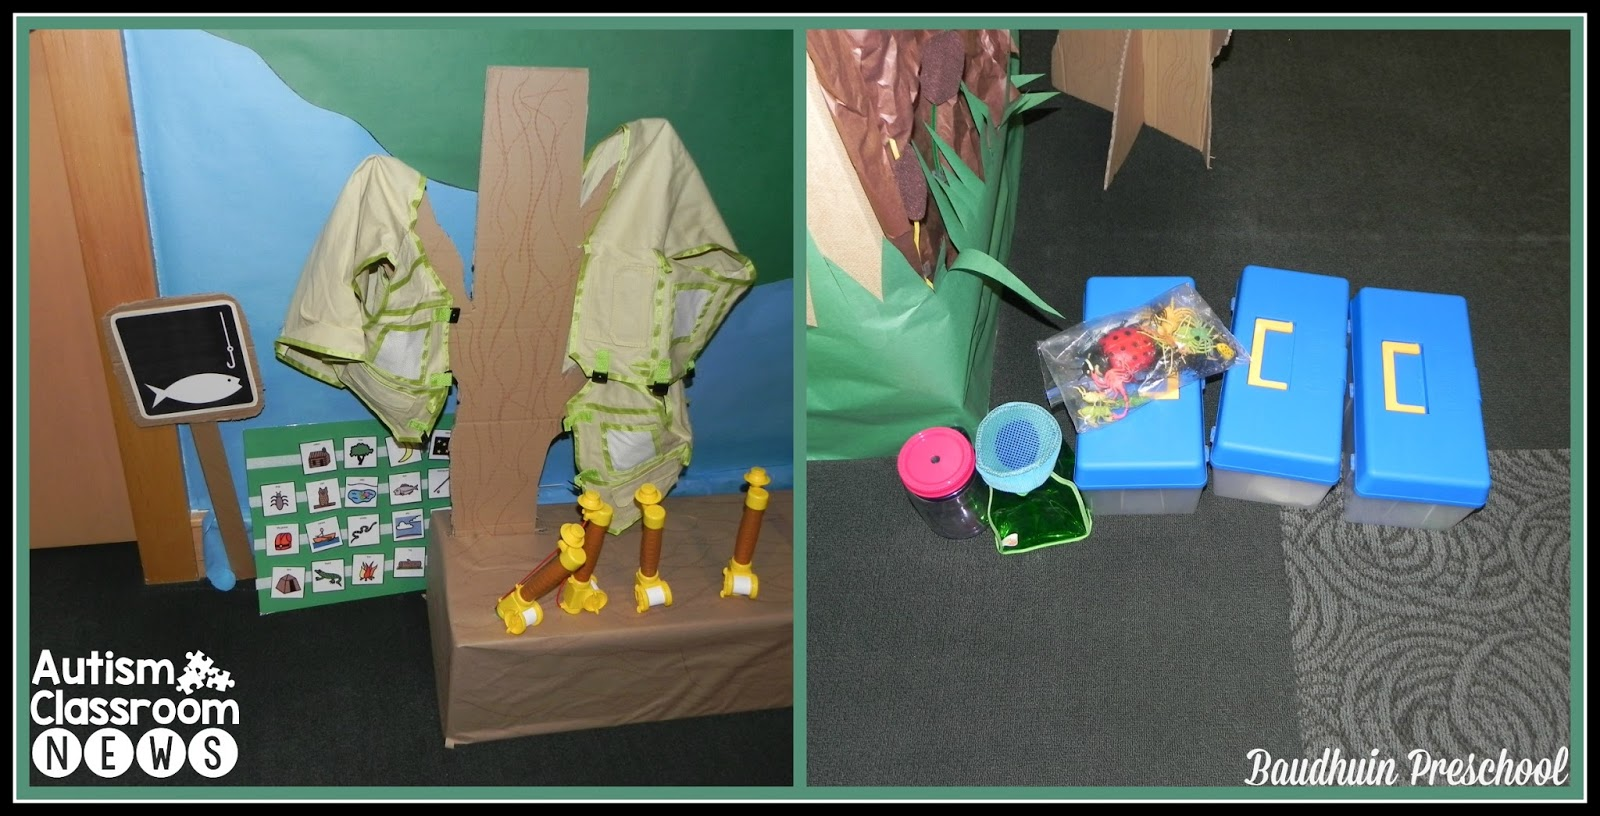 A Camping Theme For Esy From The Baudhuin Preschool Camp